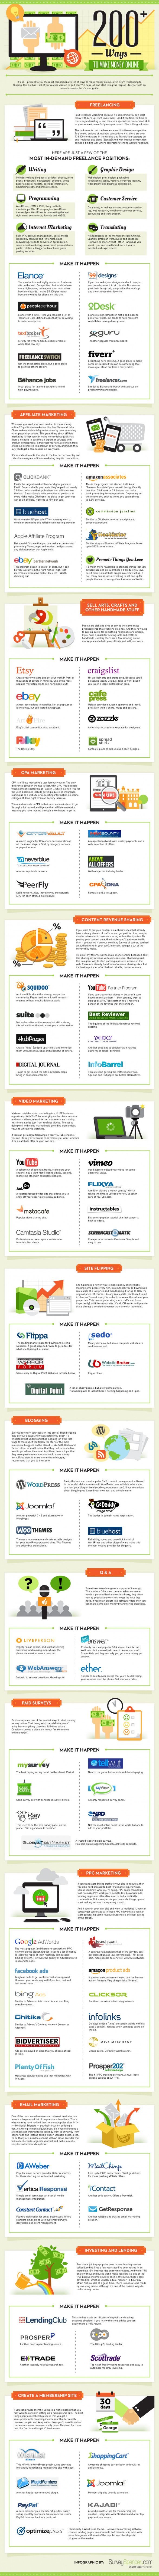 200 ways to make money online 526601778988a w587 Cómo ganar dinero en internet [Infografía].